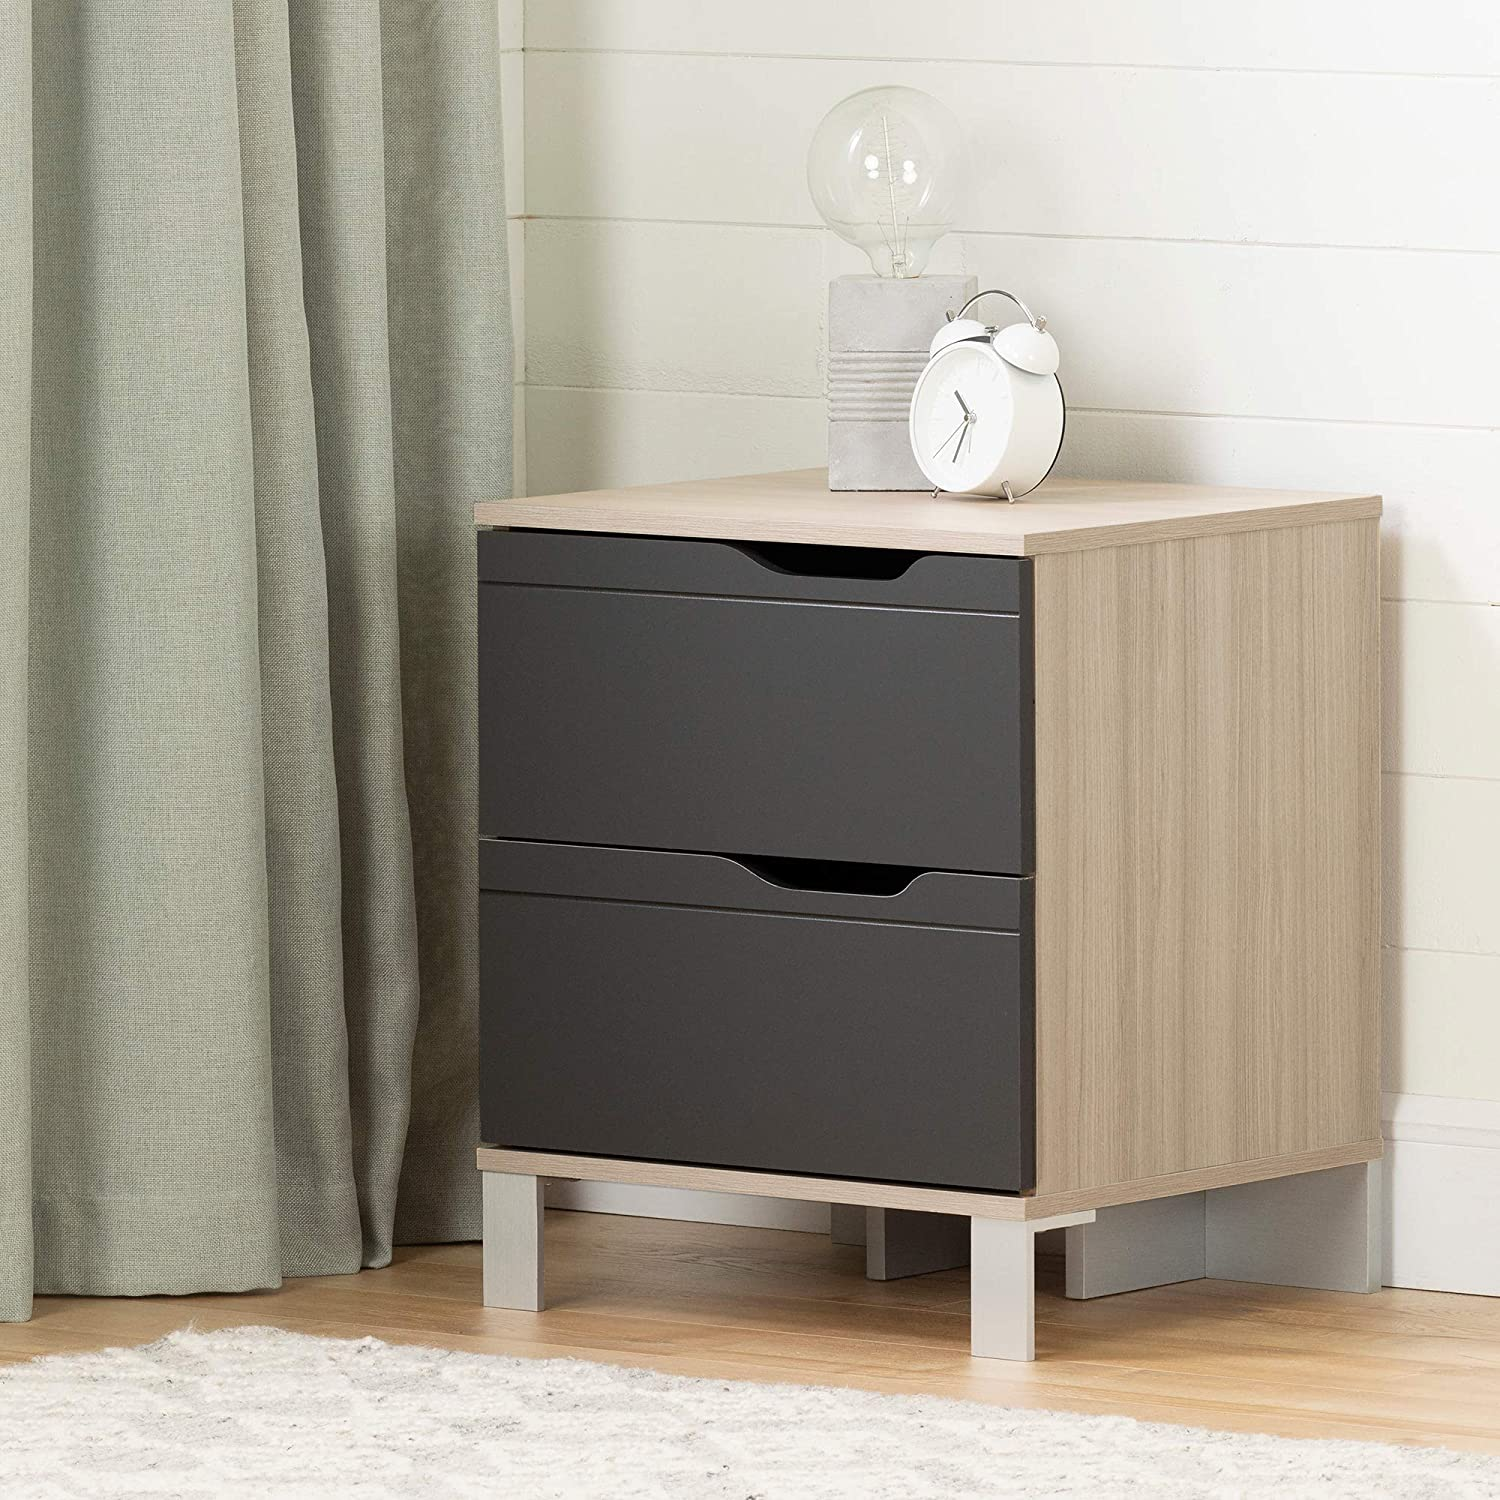 South Shore Kanagane 2-Drawer Nightstand-Soft Elm and Matte Charcoal